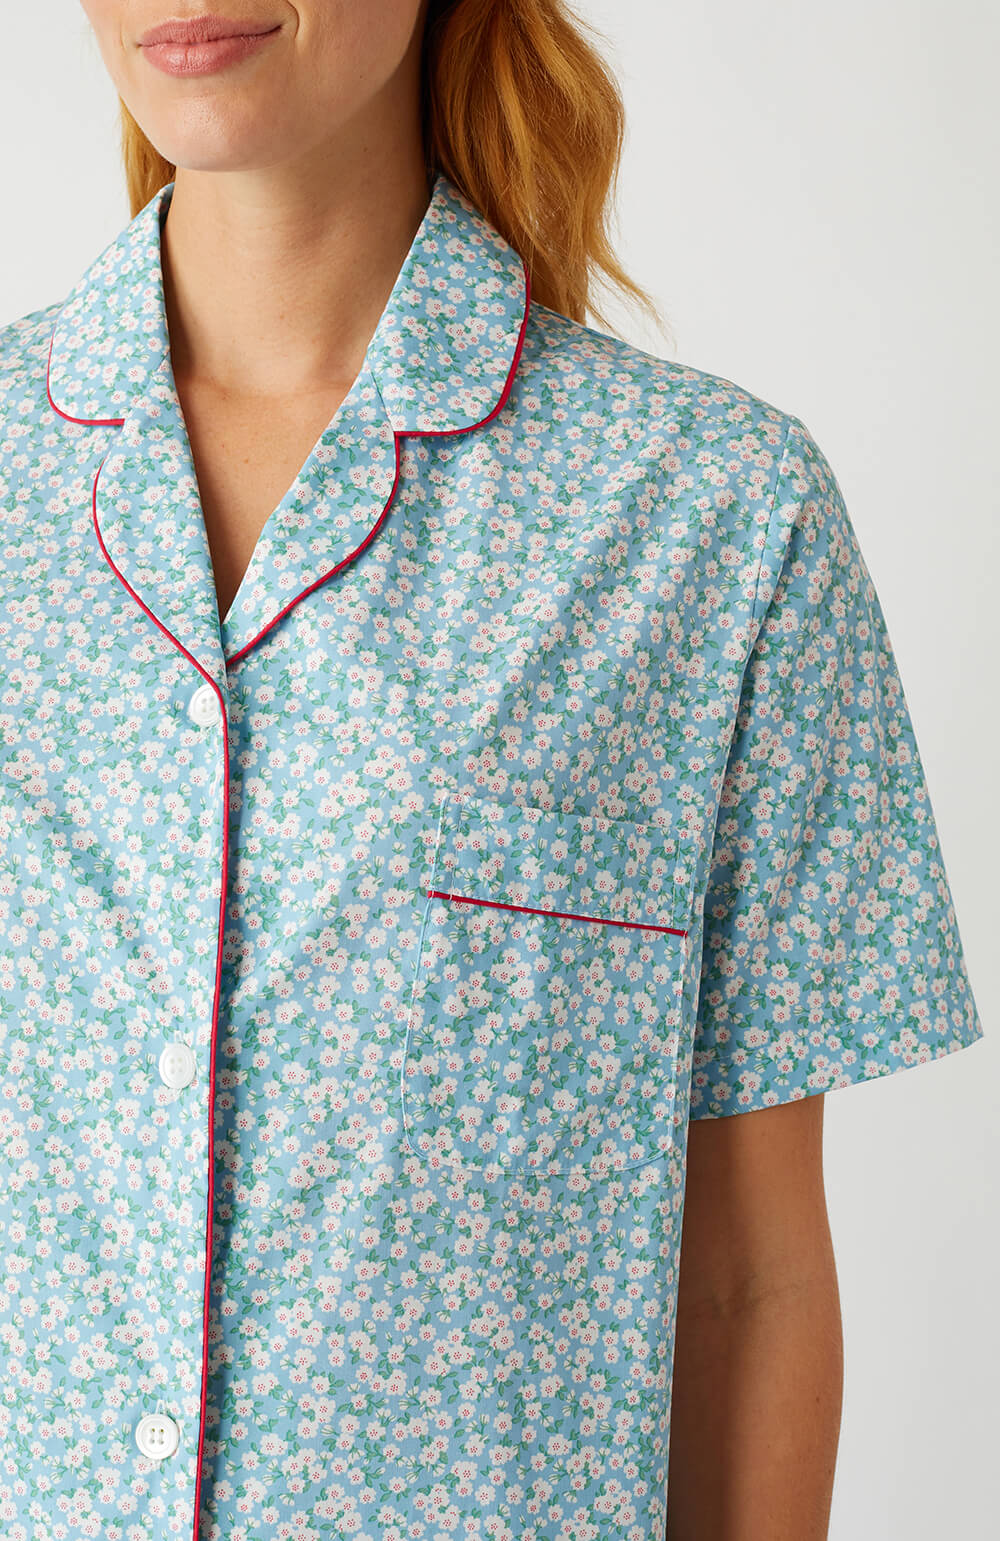 Classic Cotton Short Sleeve Pyjamas (Clph) - Pale Blue Floral